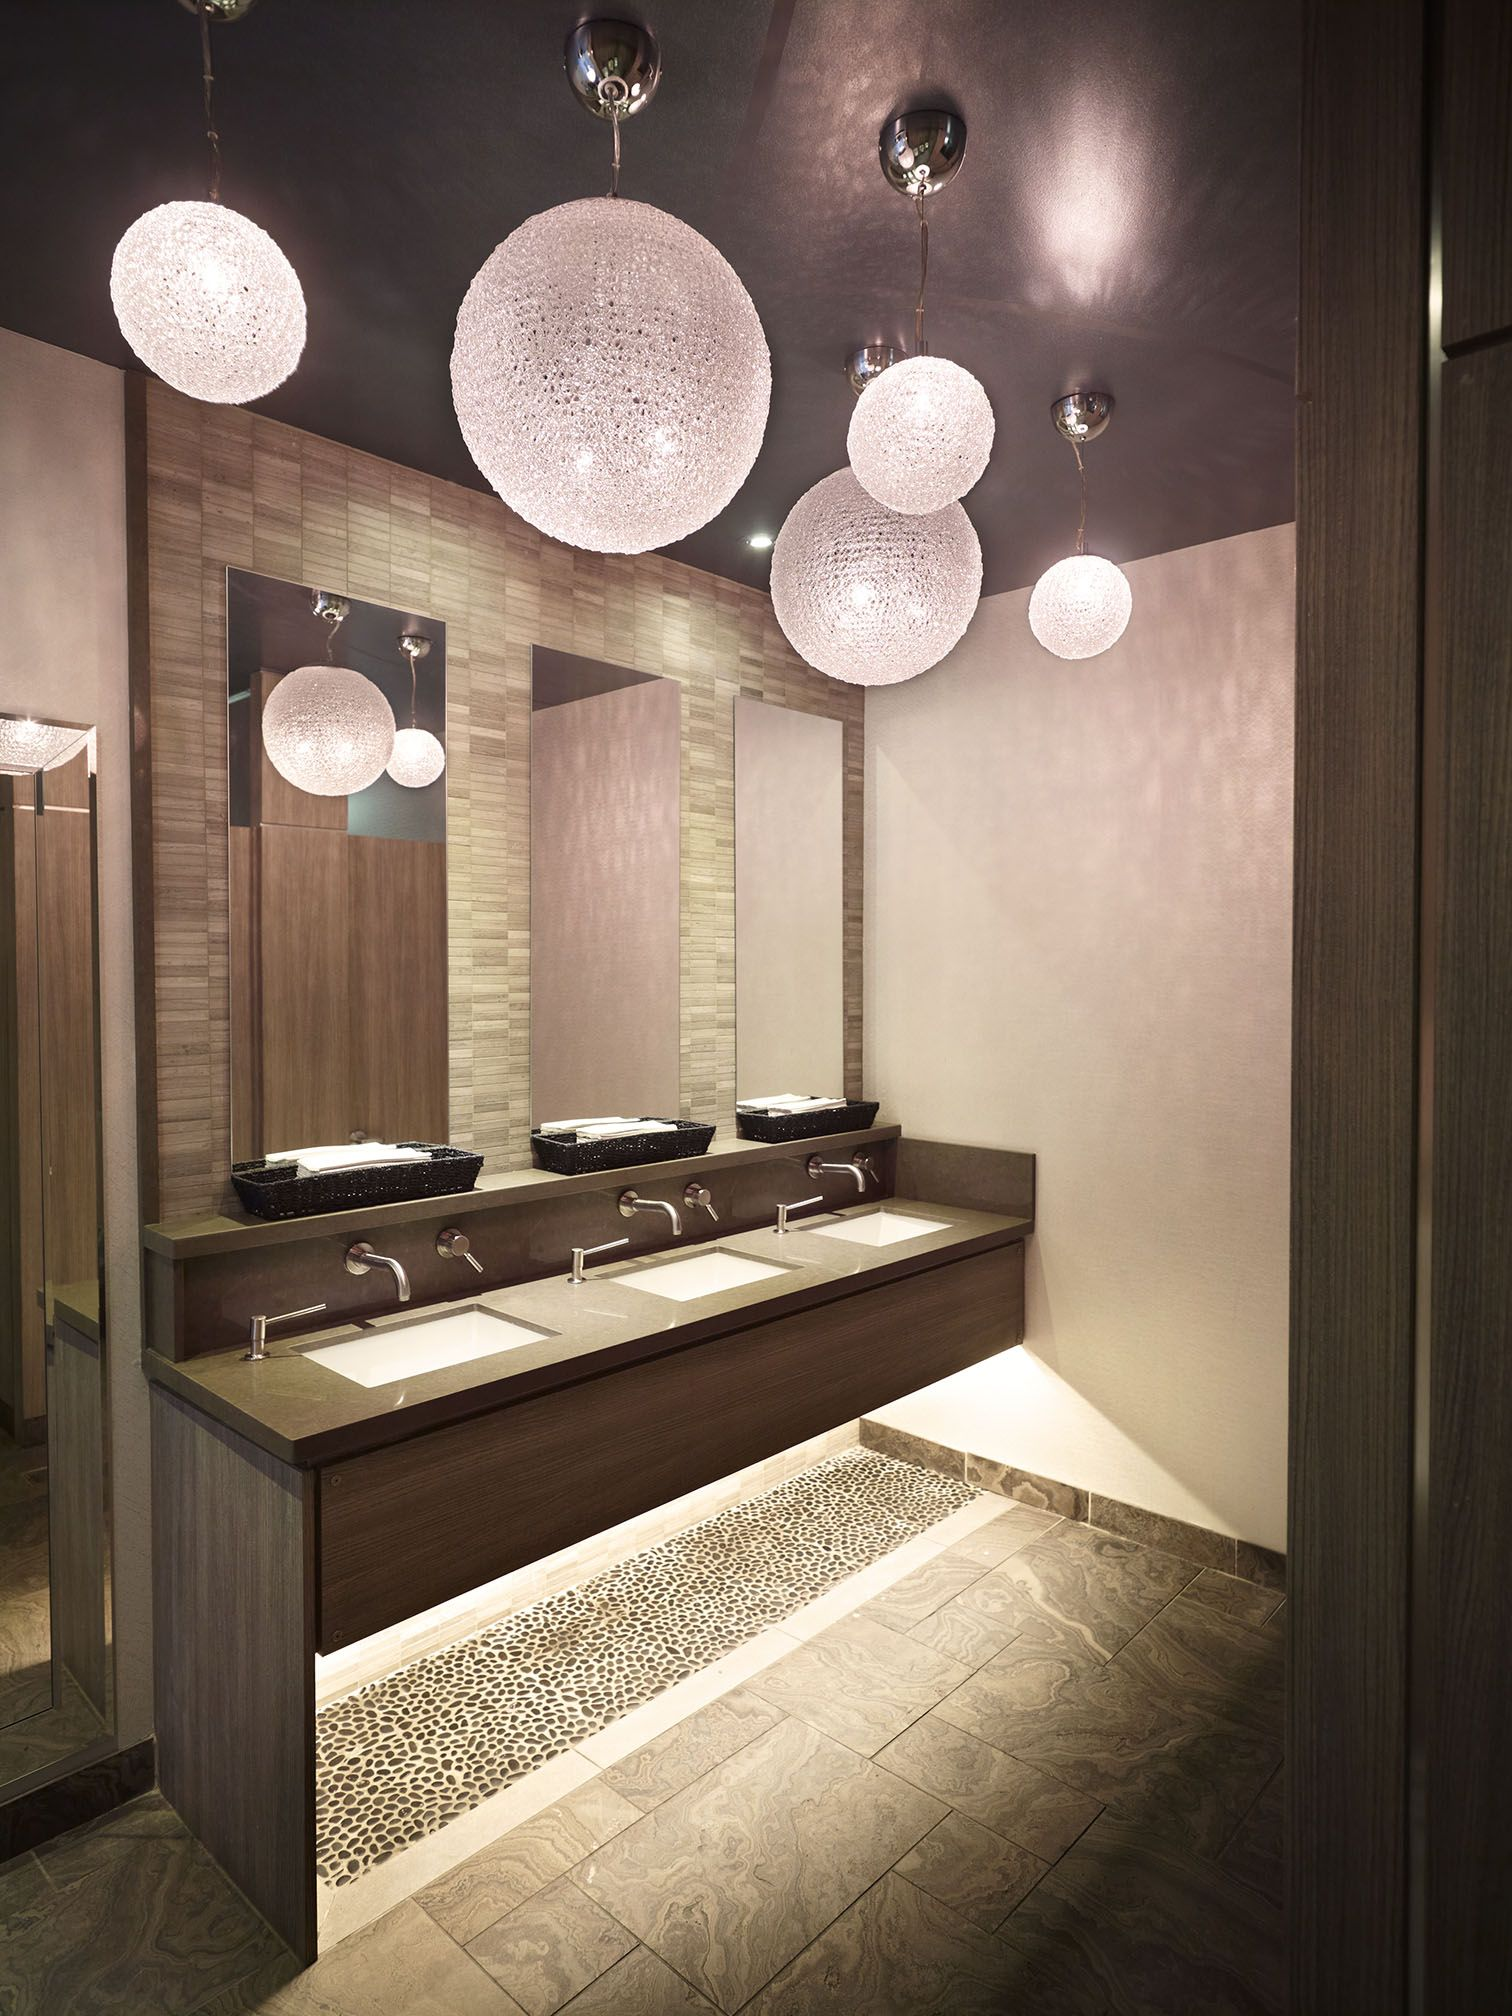 Stunning Caesarstone Quartz Surfaces In The Bathrooms At Hamiltonu0027s Sarcoa  Restaurant. Www.caesarstone.